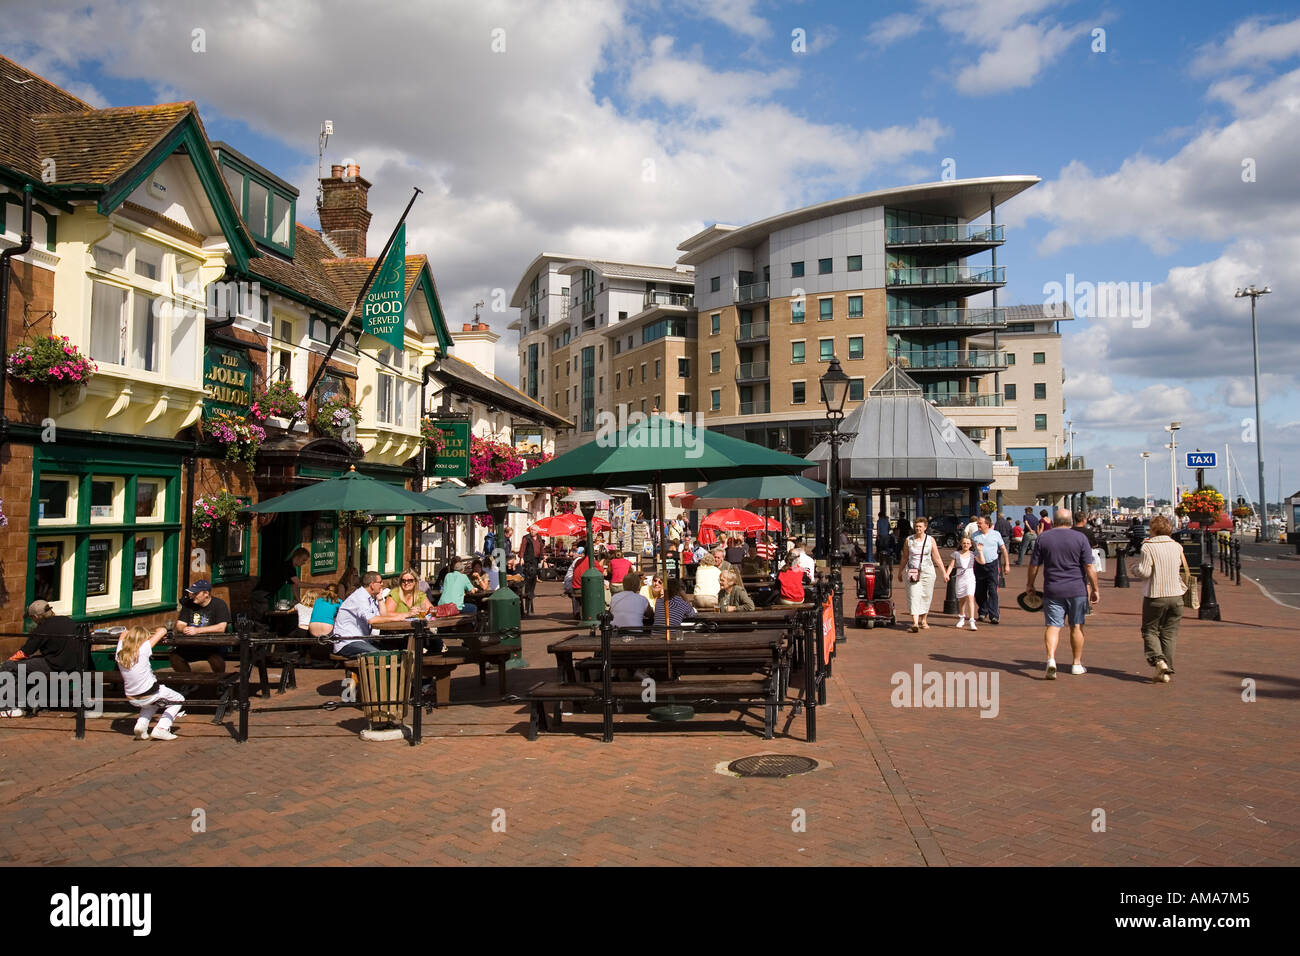 UK Dorset Poole Old Town Quay Jolly Sailor and Lord Nelson seafront public houses - Stock Image